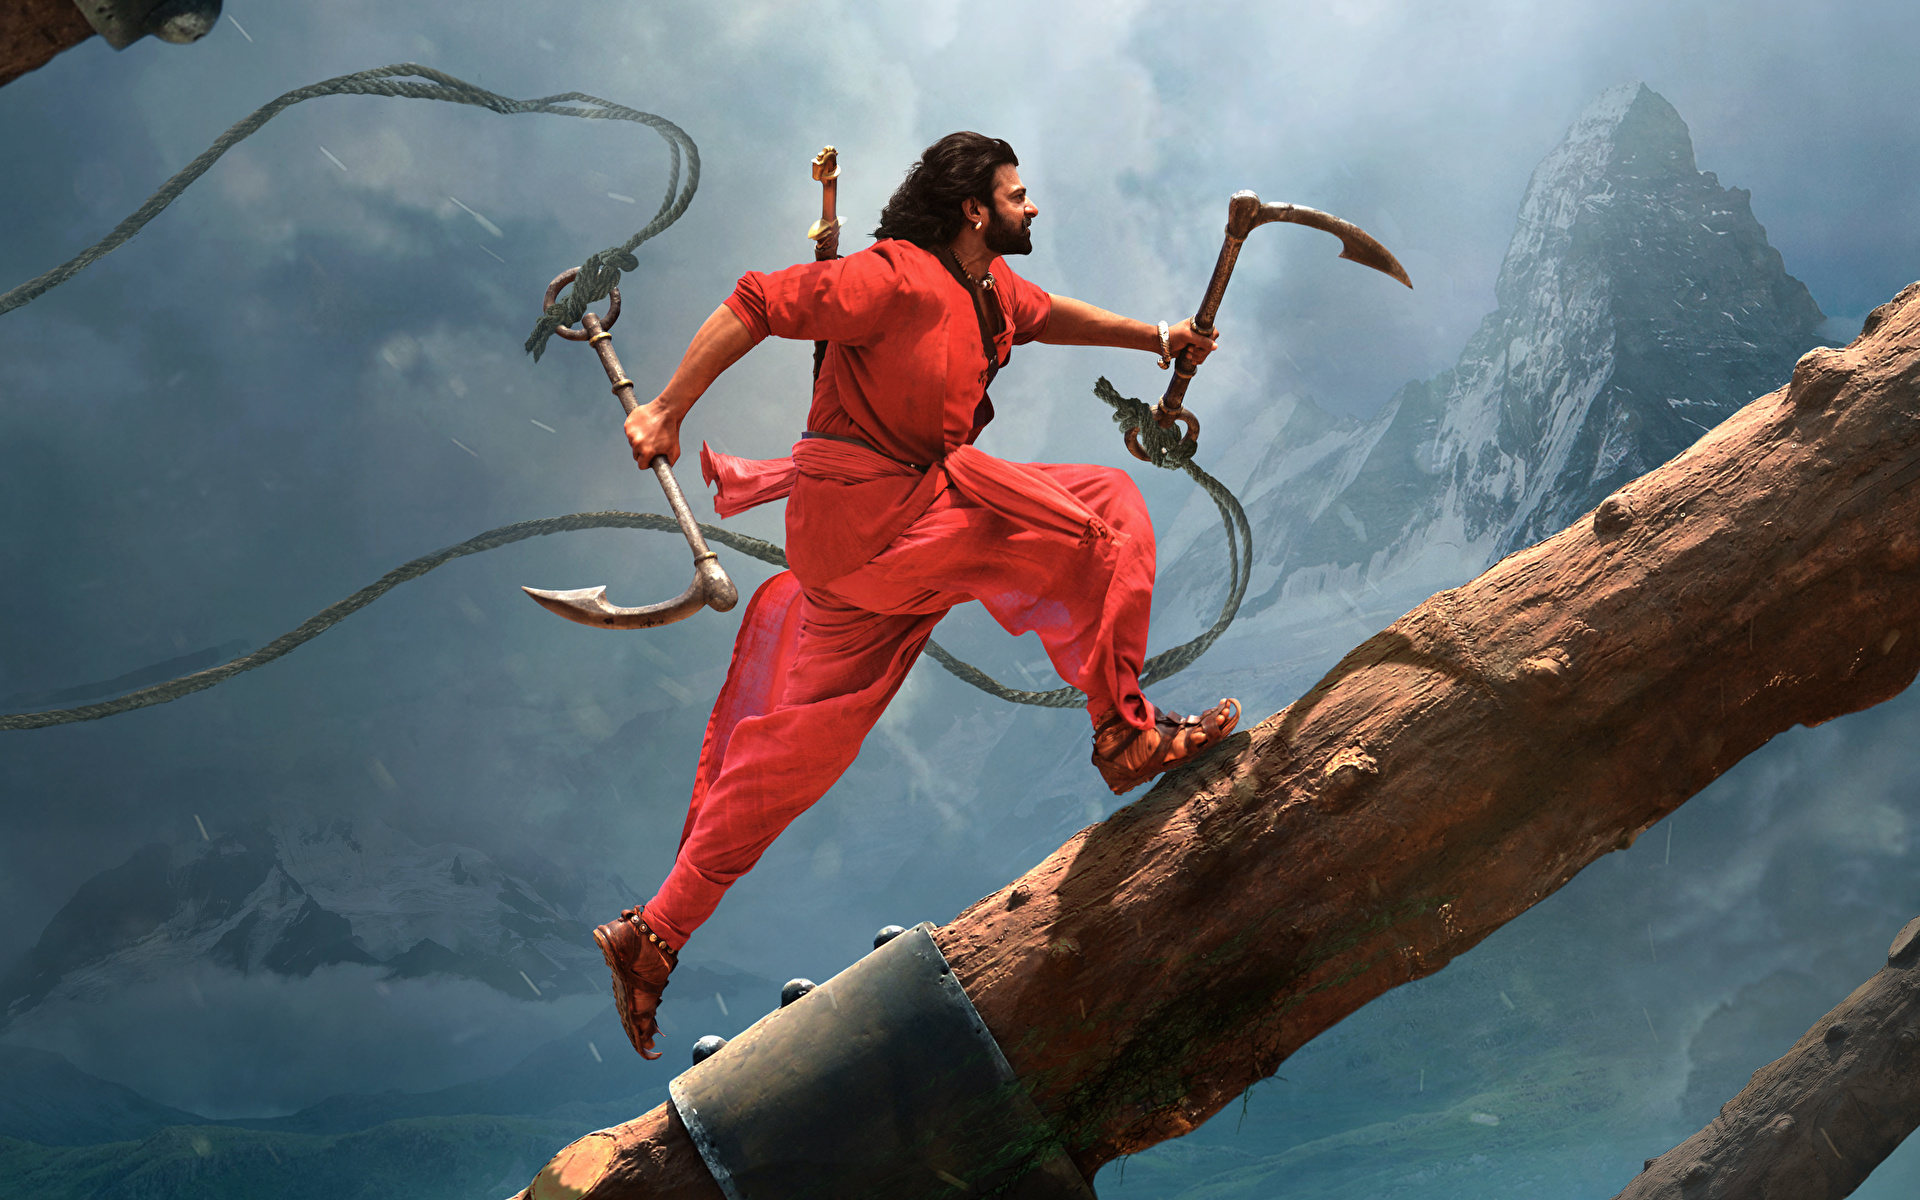 Men_Baahubali_2_The_Conclusion_Prabhas_Run_Wood_533998_1920x1200